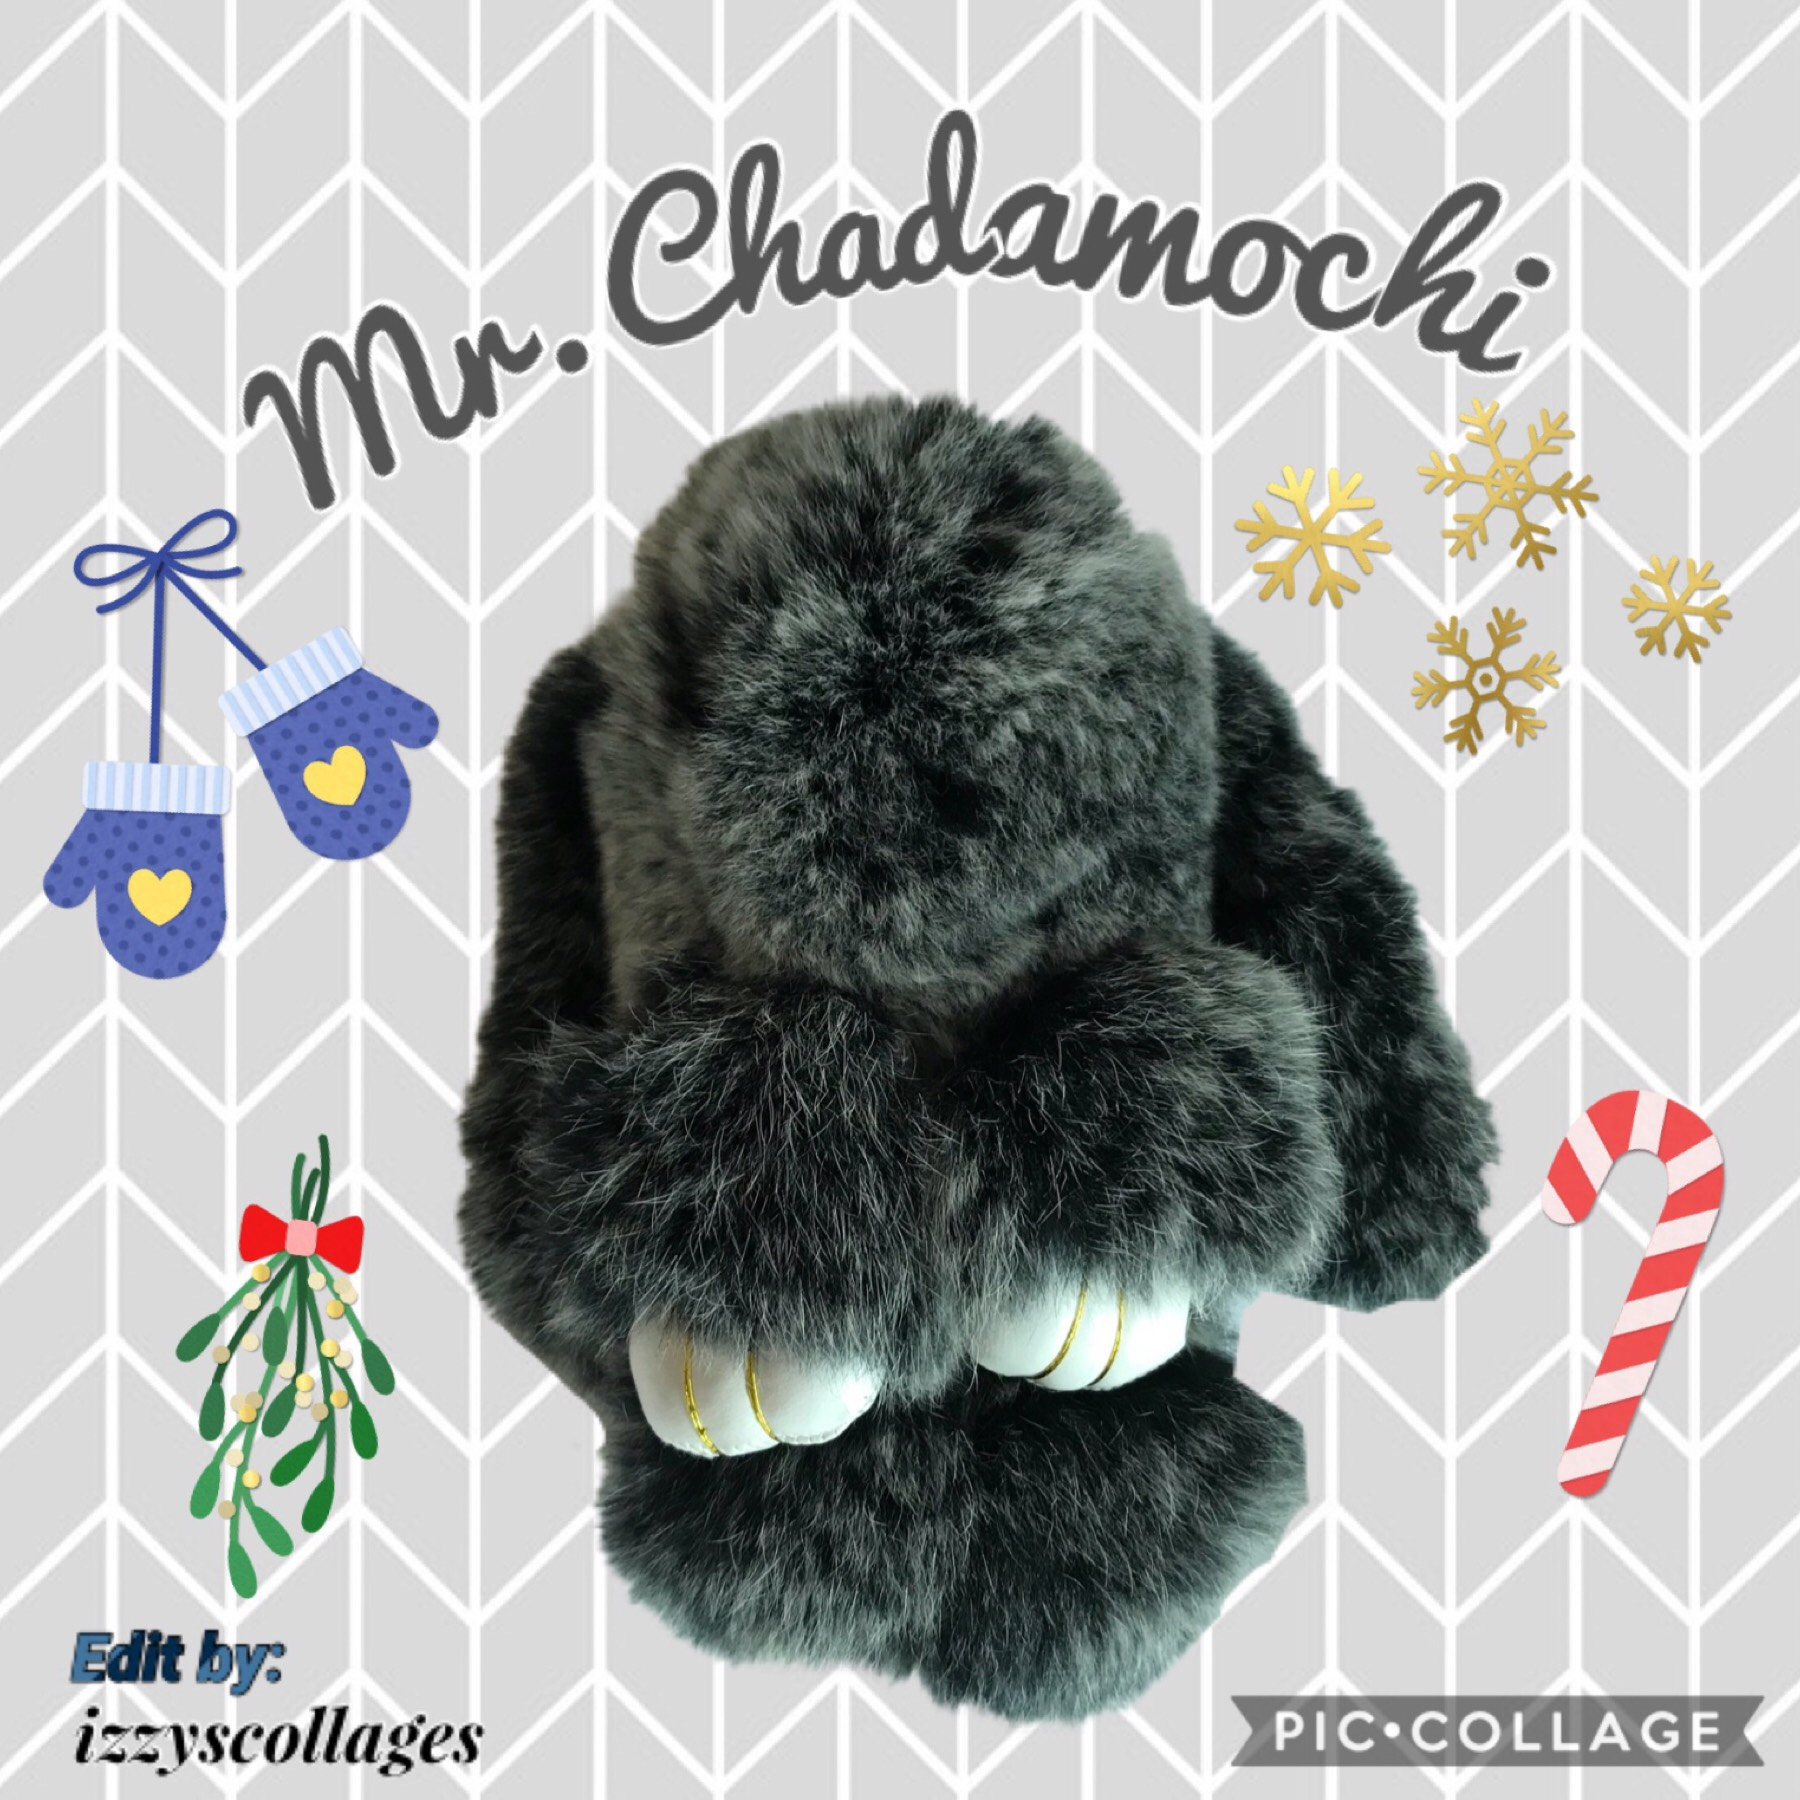 Meet Mr. Chadamochi! My bunny! Credit to izzyscollages! You should definitely check out her amazing account! Thx!